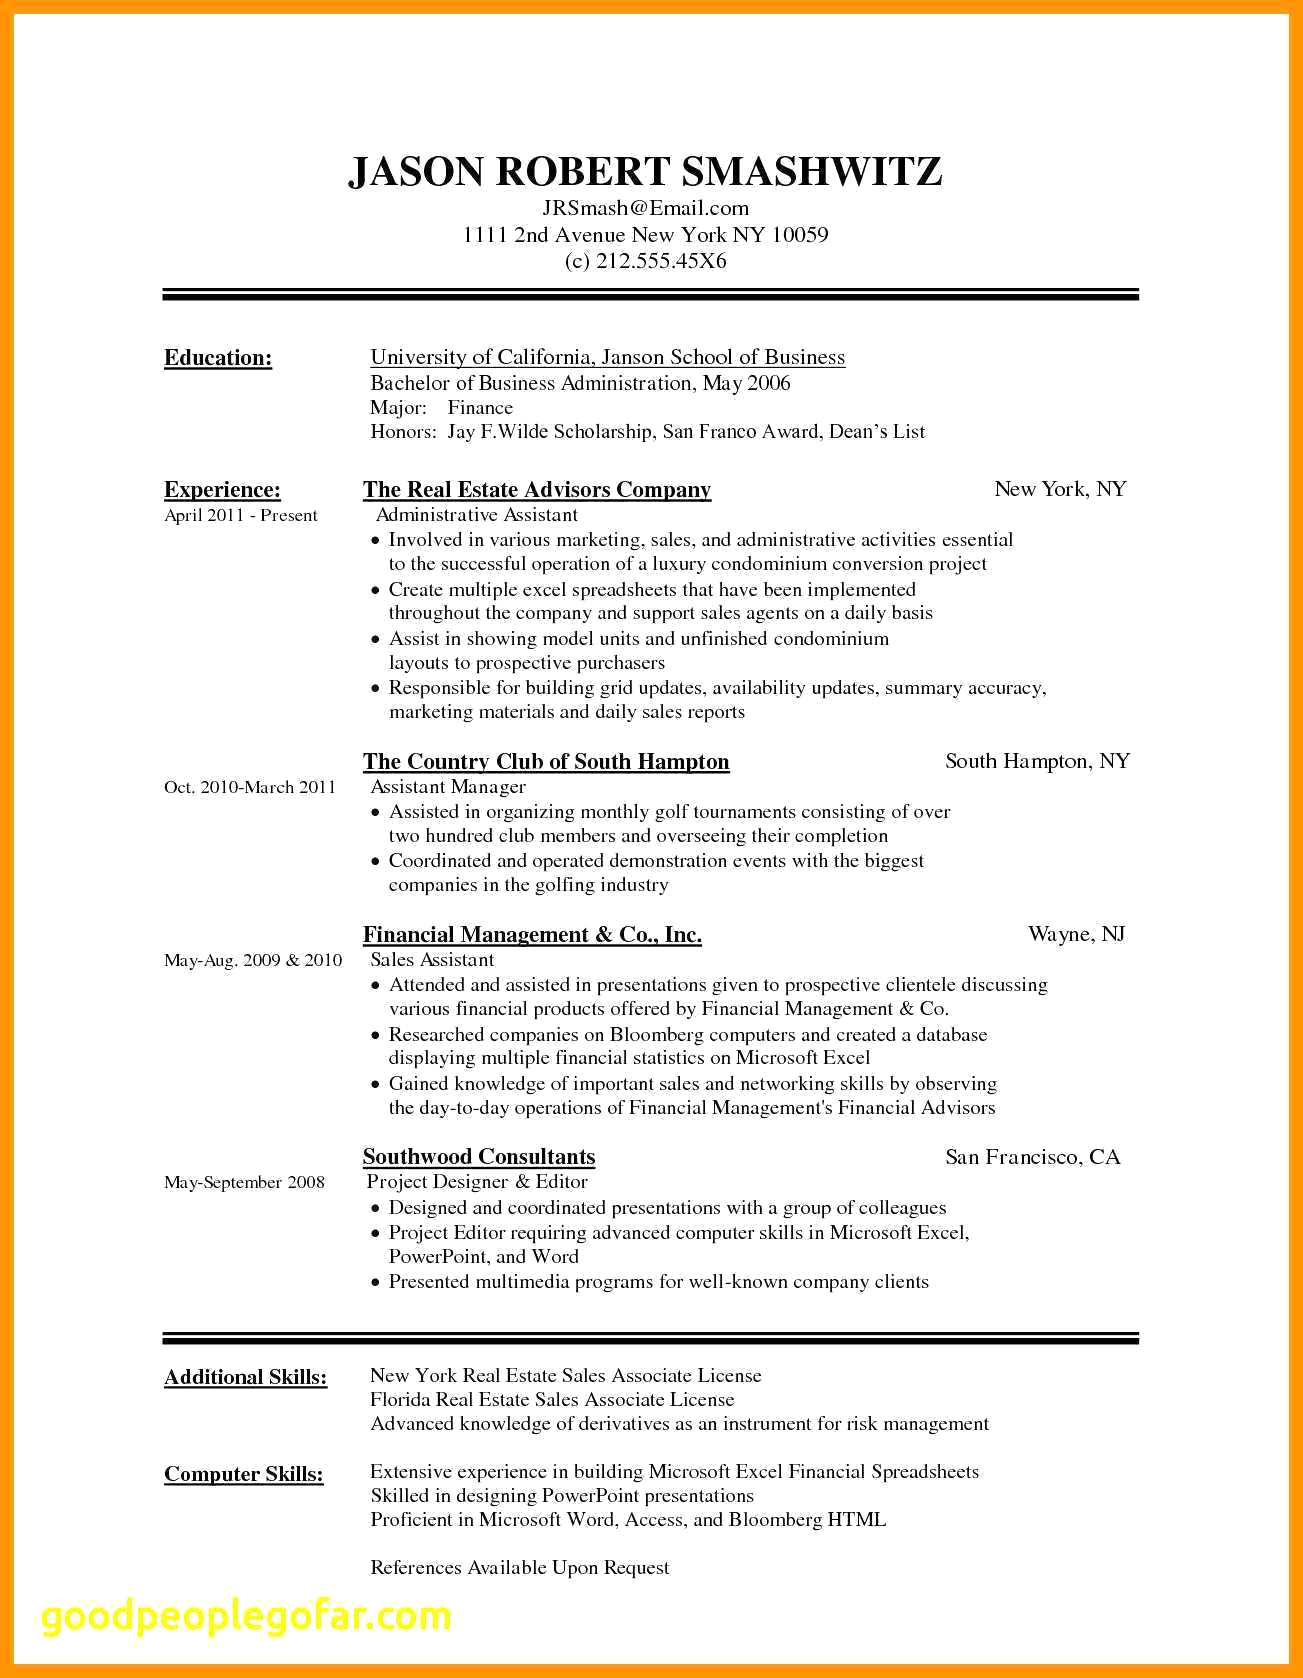 downloadable resume templates for microsoft word example-Gallery Resume Templates Word Free Beautiful Conflict Minerals Reporting Template Best Post Title 0d Microsoft 6-h